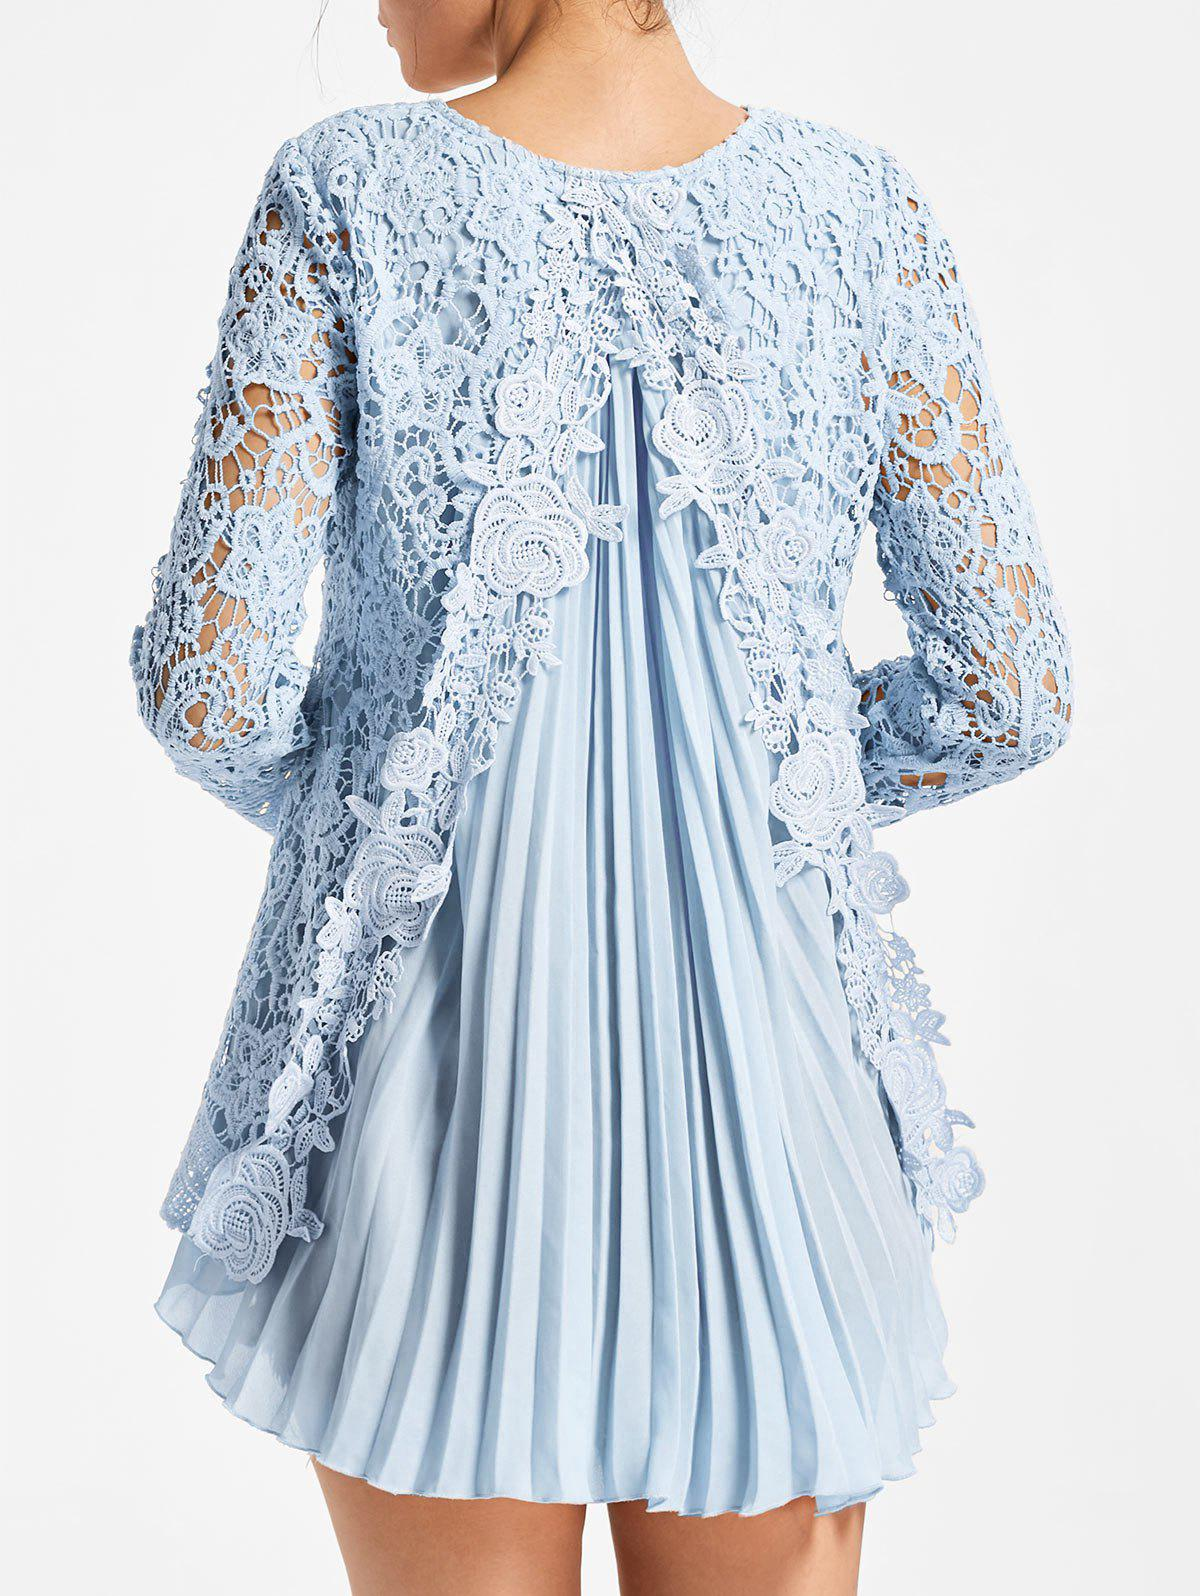 High Low Pleated Lace BlouseWOMEN<br><br>Size: XL; Color: LIGHT BLUE; Style: Fashion; Material: Polyester; Shirt Length: Long; Sleeve Length: Full; Collar: Round Neck; Pattern Type: Patchwork,Solid; Season: Fall,Spring; Weight: 0.3500kg; Package Contents: 1 x Blouse;